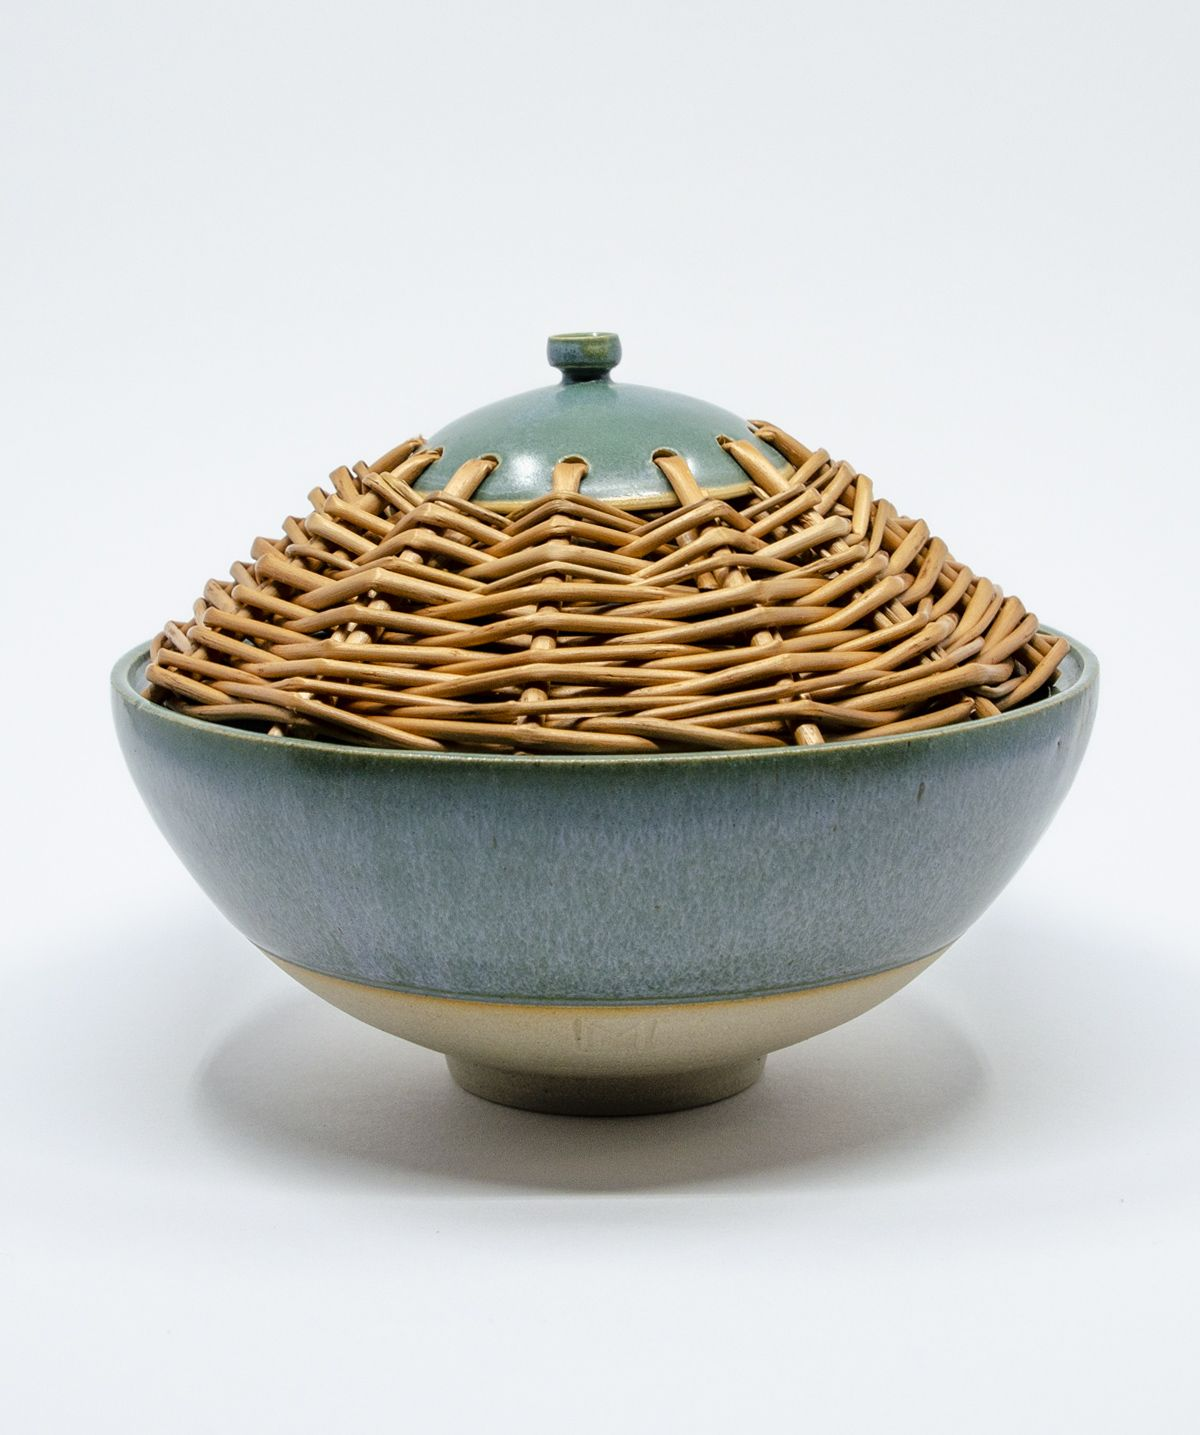 The bowl is glazed outside and inside with a green turquoise glaze, a stone ware bottom. The lid of the bowl is woven from willow. Pottery handmade art - Gosha Ceramics by #gosha_ceramics // #ceramics #céramique #osier #osiervintage #pottery #poterie #clay #claylove #willowweaving #homedeco #willow #willowceramics #handmadeceramics #willowtree #rusticstyle #ilovepottery #bowl #rusticdecor #wheelthrown #wheelthrowing #籐 #funcionalpottery